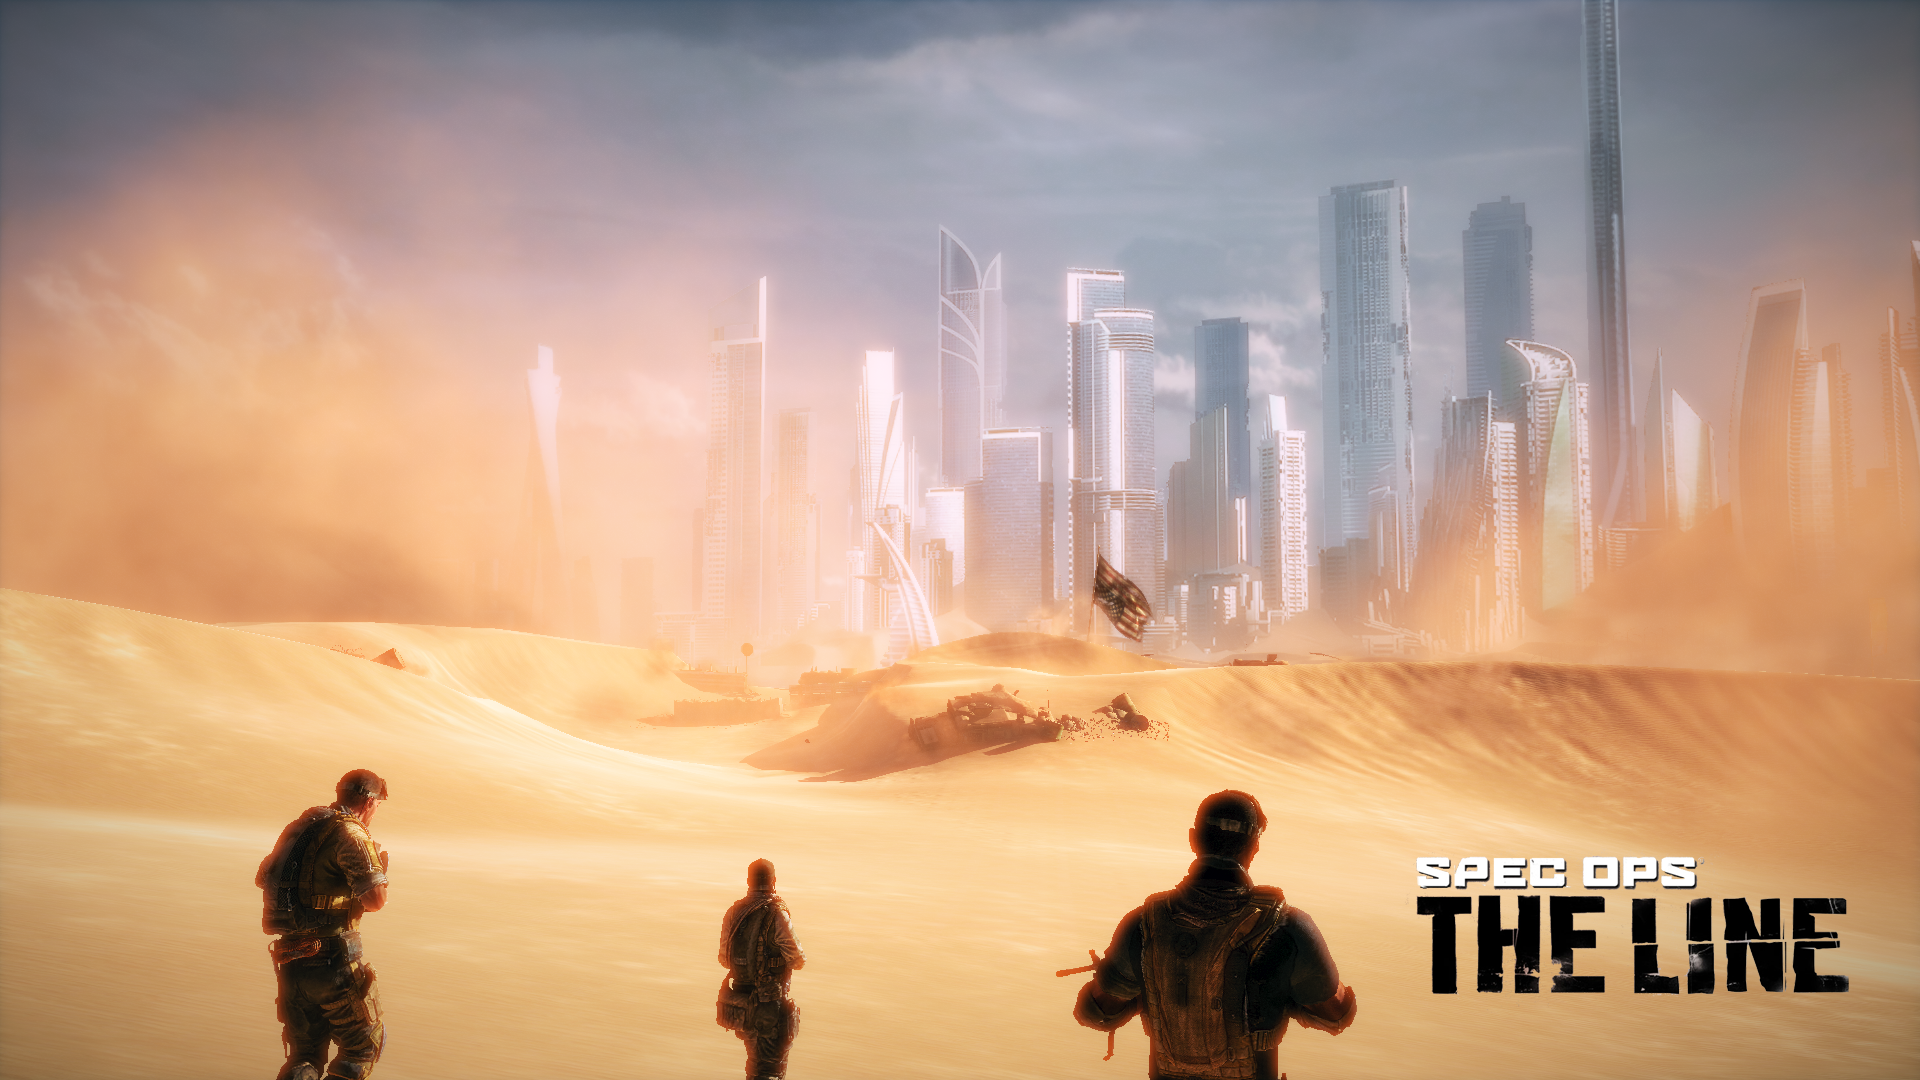 Spec Ops The Line HD Wallpaper